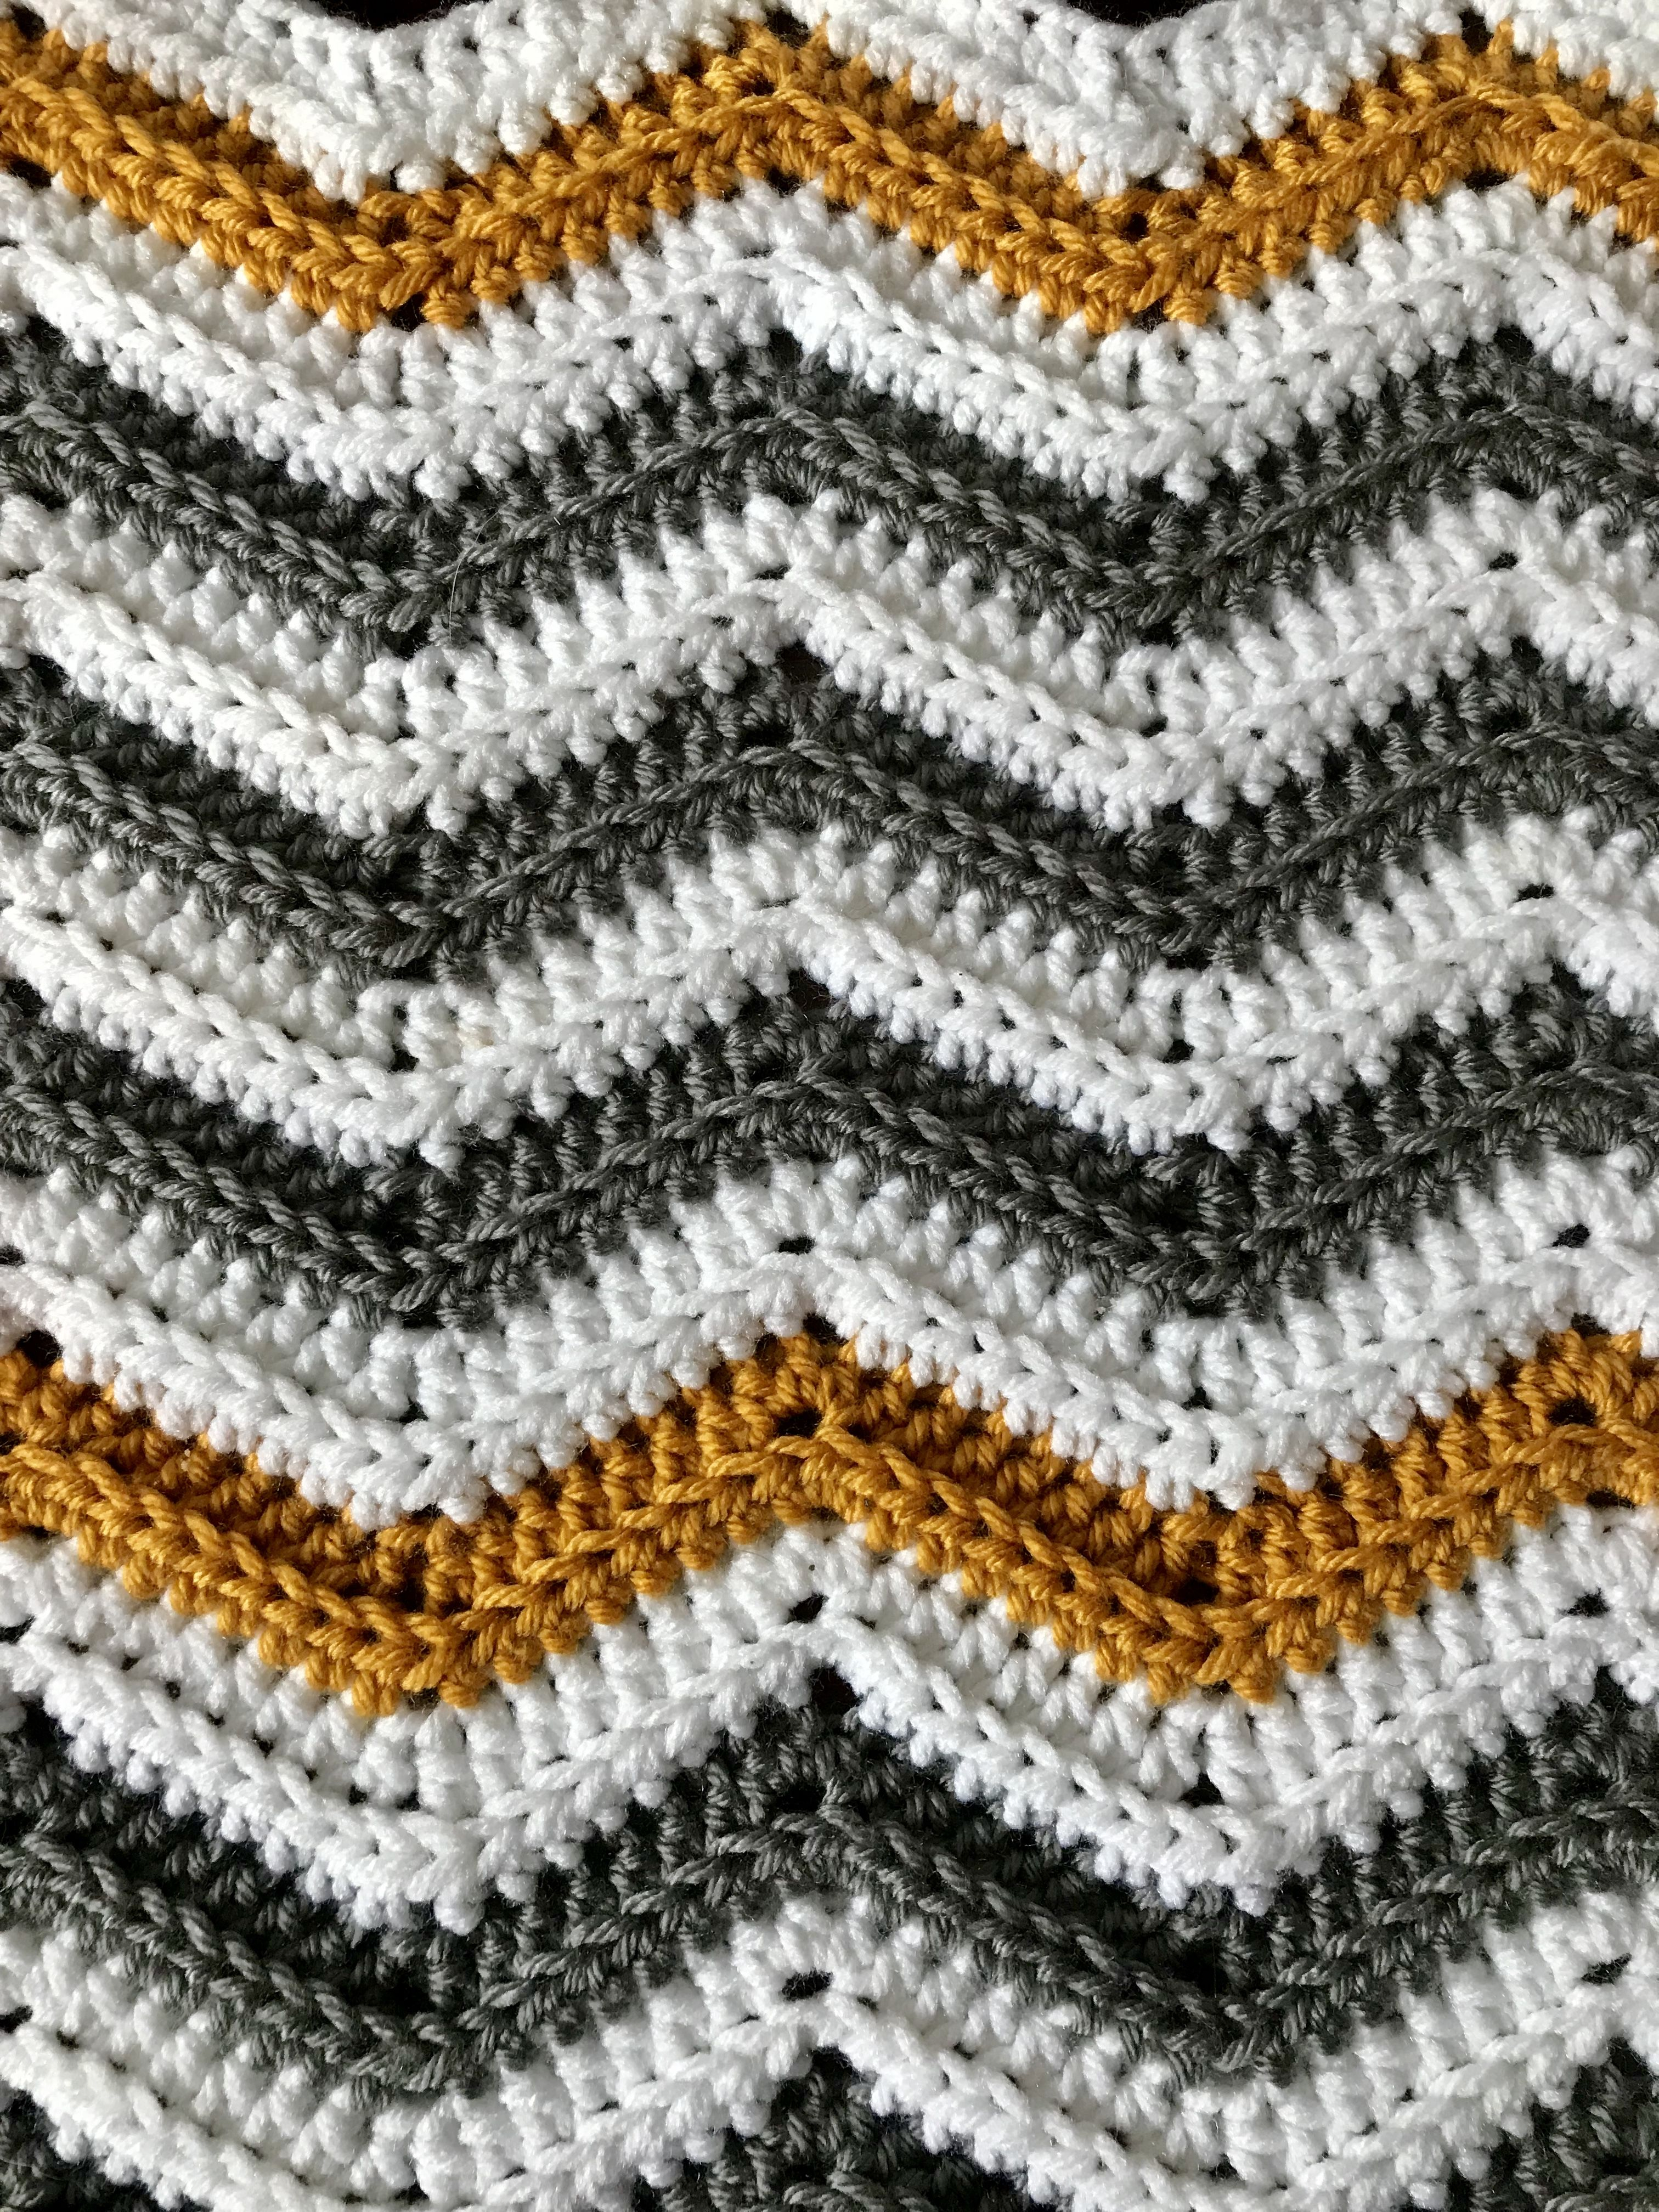 An Awesome Crochet Wallpaper Background For Your Phone Chevron Grey White And A Dab Of Gold Give Al Crochet Backgrounds For Your Phone Wallpaper Backgrounds